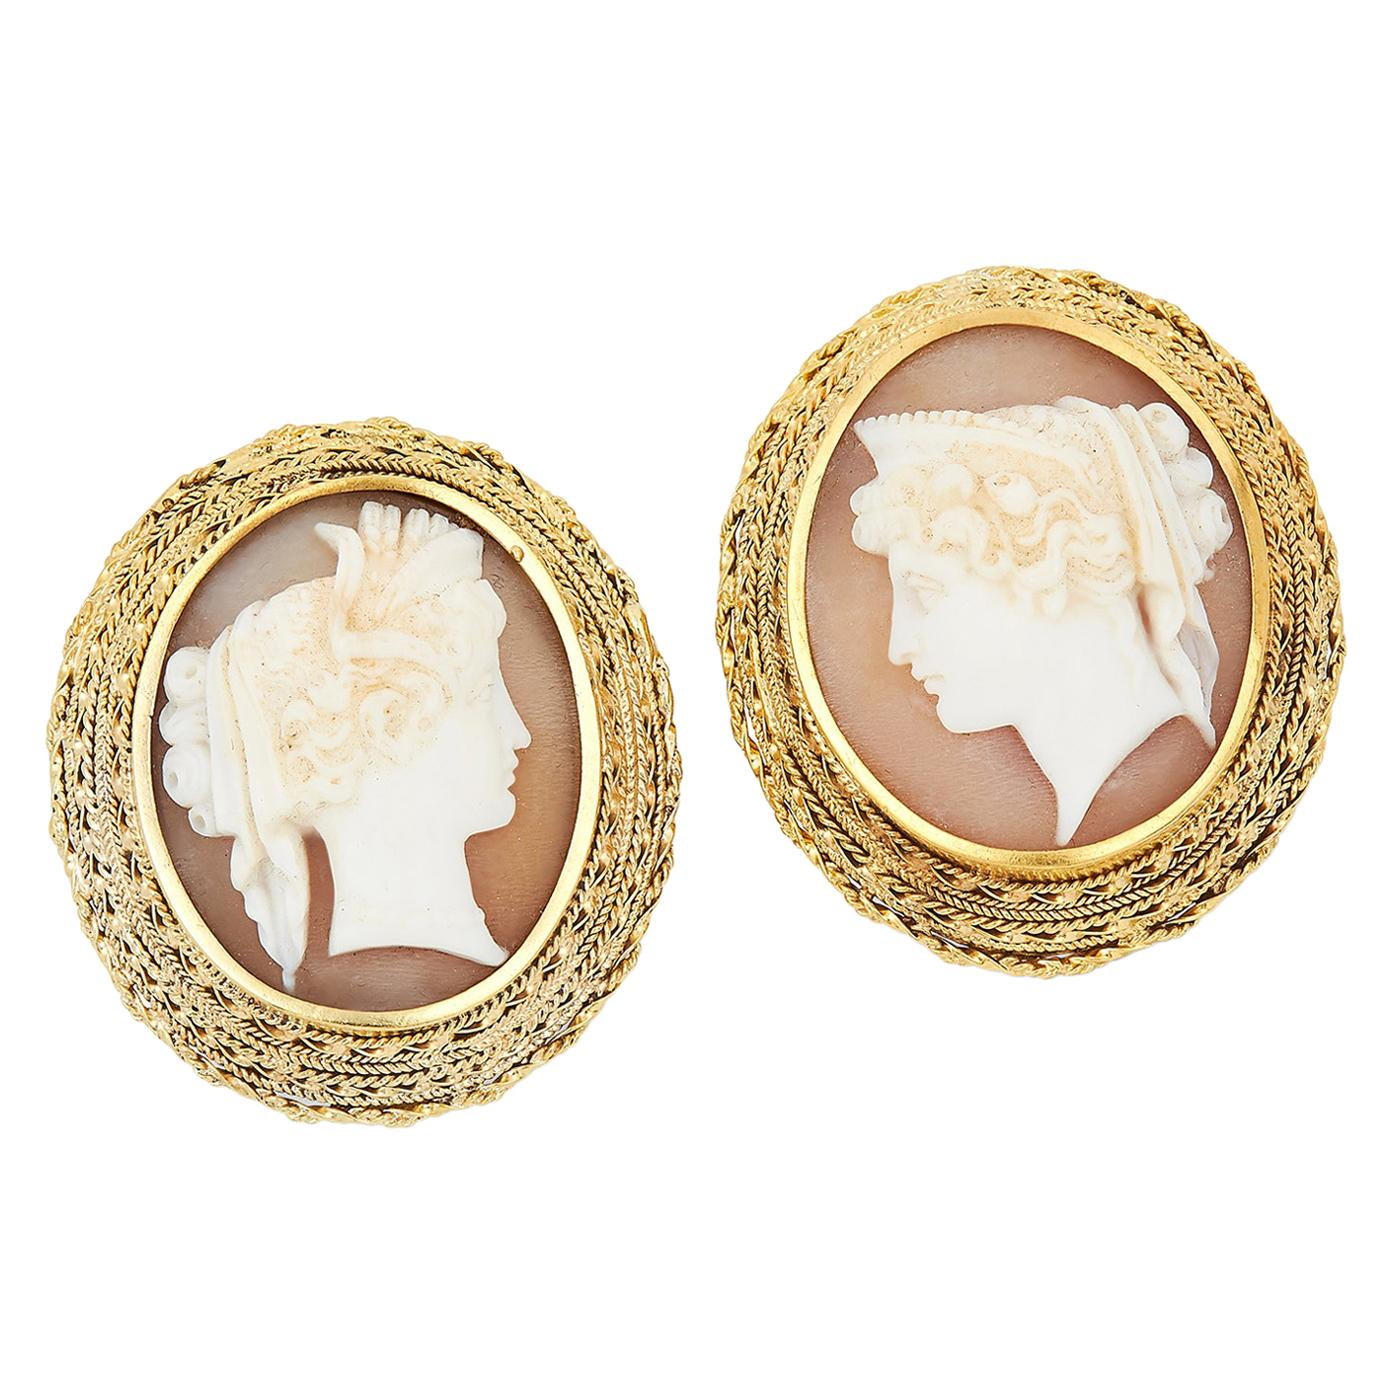 Italian Antique Carved Cameo Earrings, 1880s